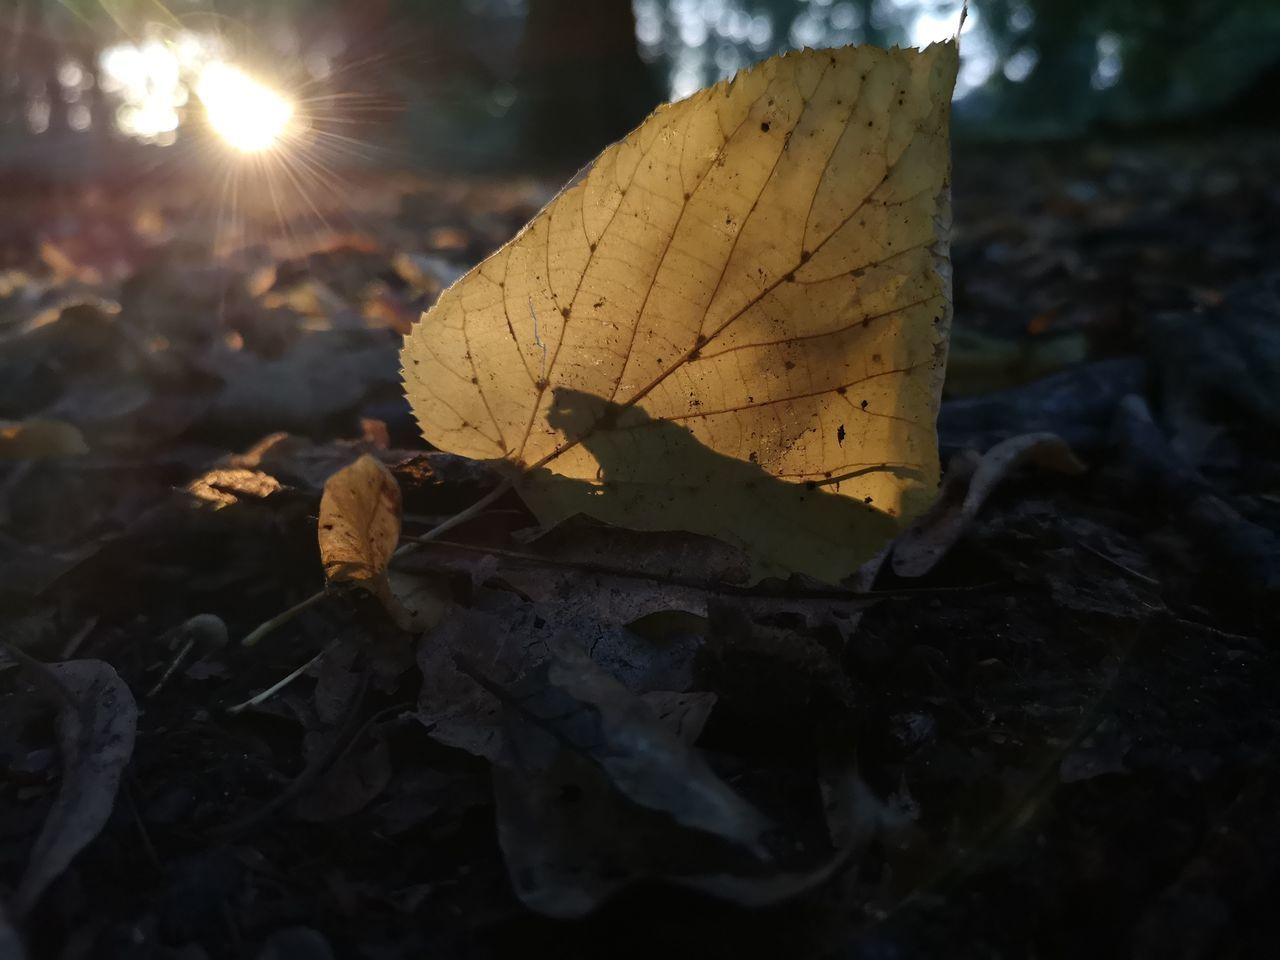 plant part, leaf, nature, close-up, autumn, dry, sunlight, beauty in nature, vulnerability, no people, land, fragility, plant, day, change, field, outdoors, falling, selective focus, leaves, lens flare, dried